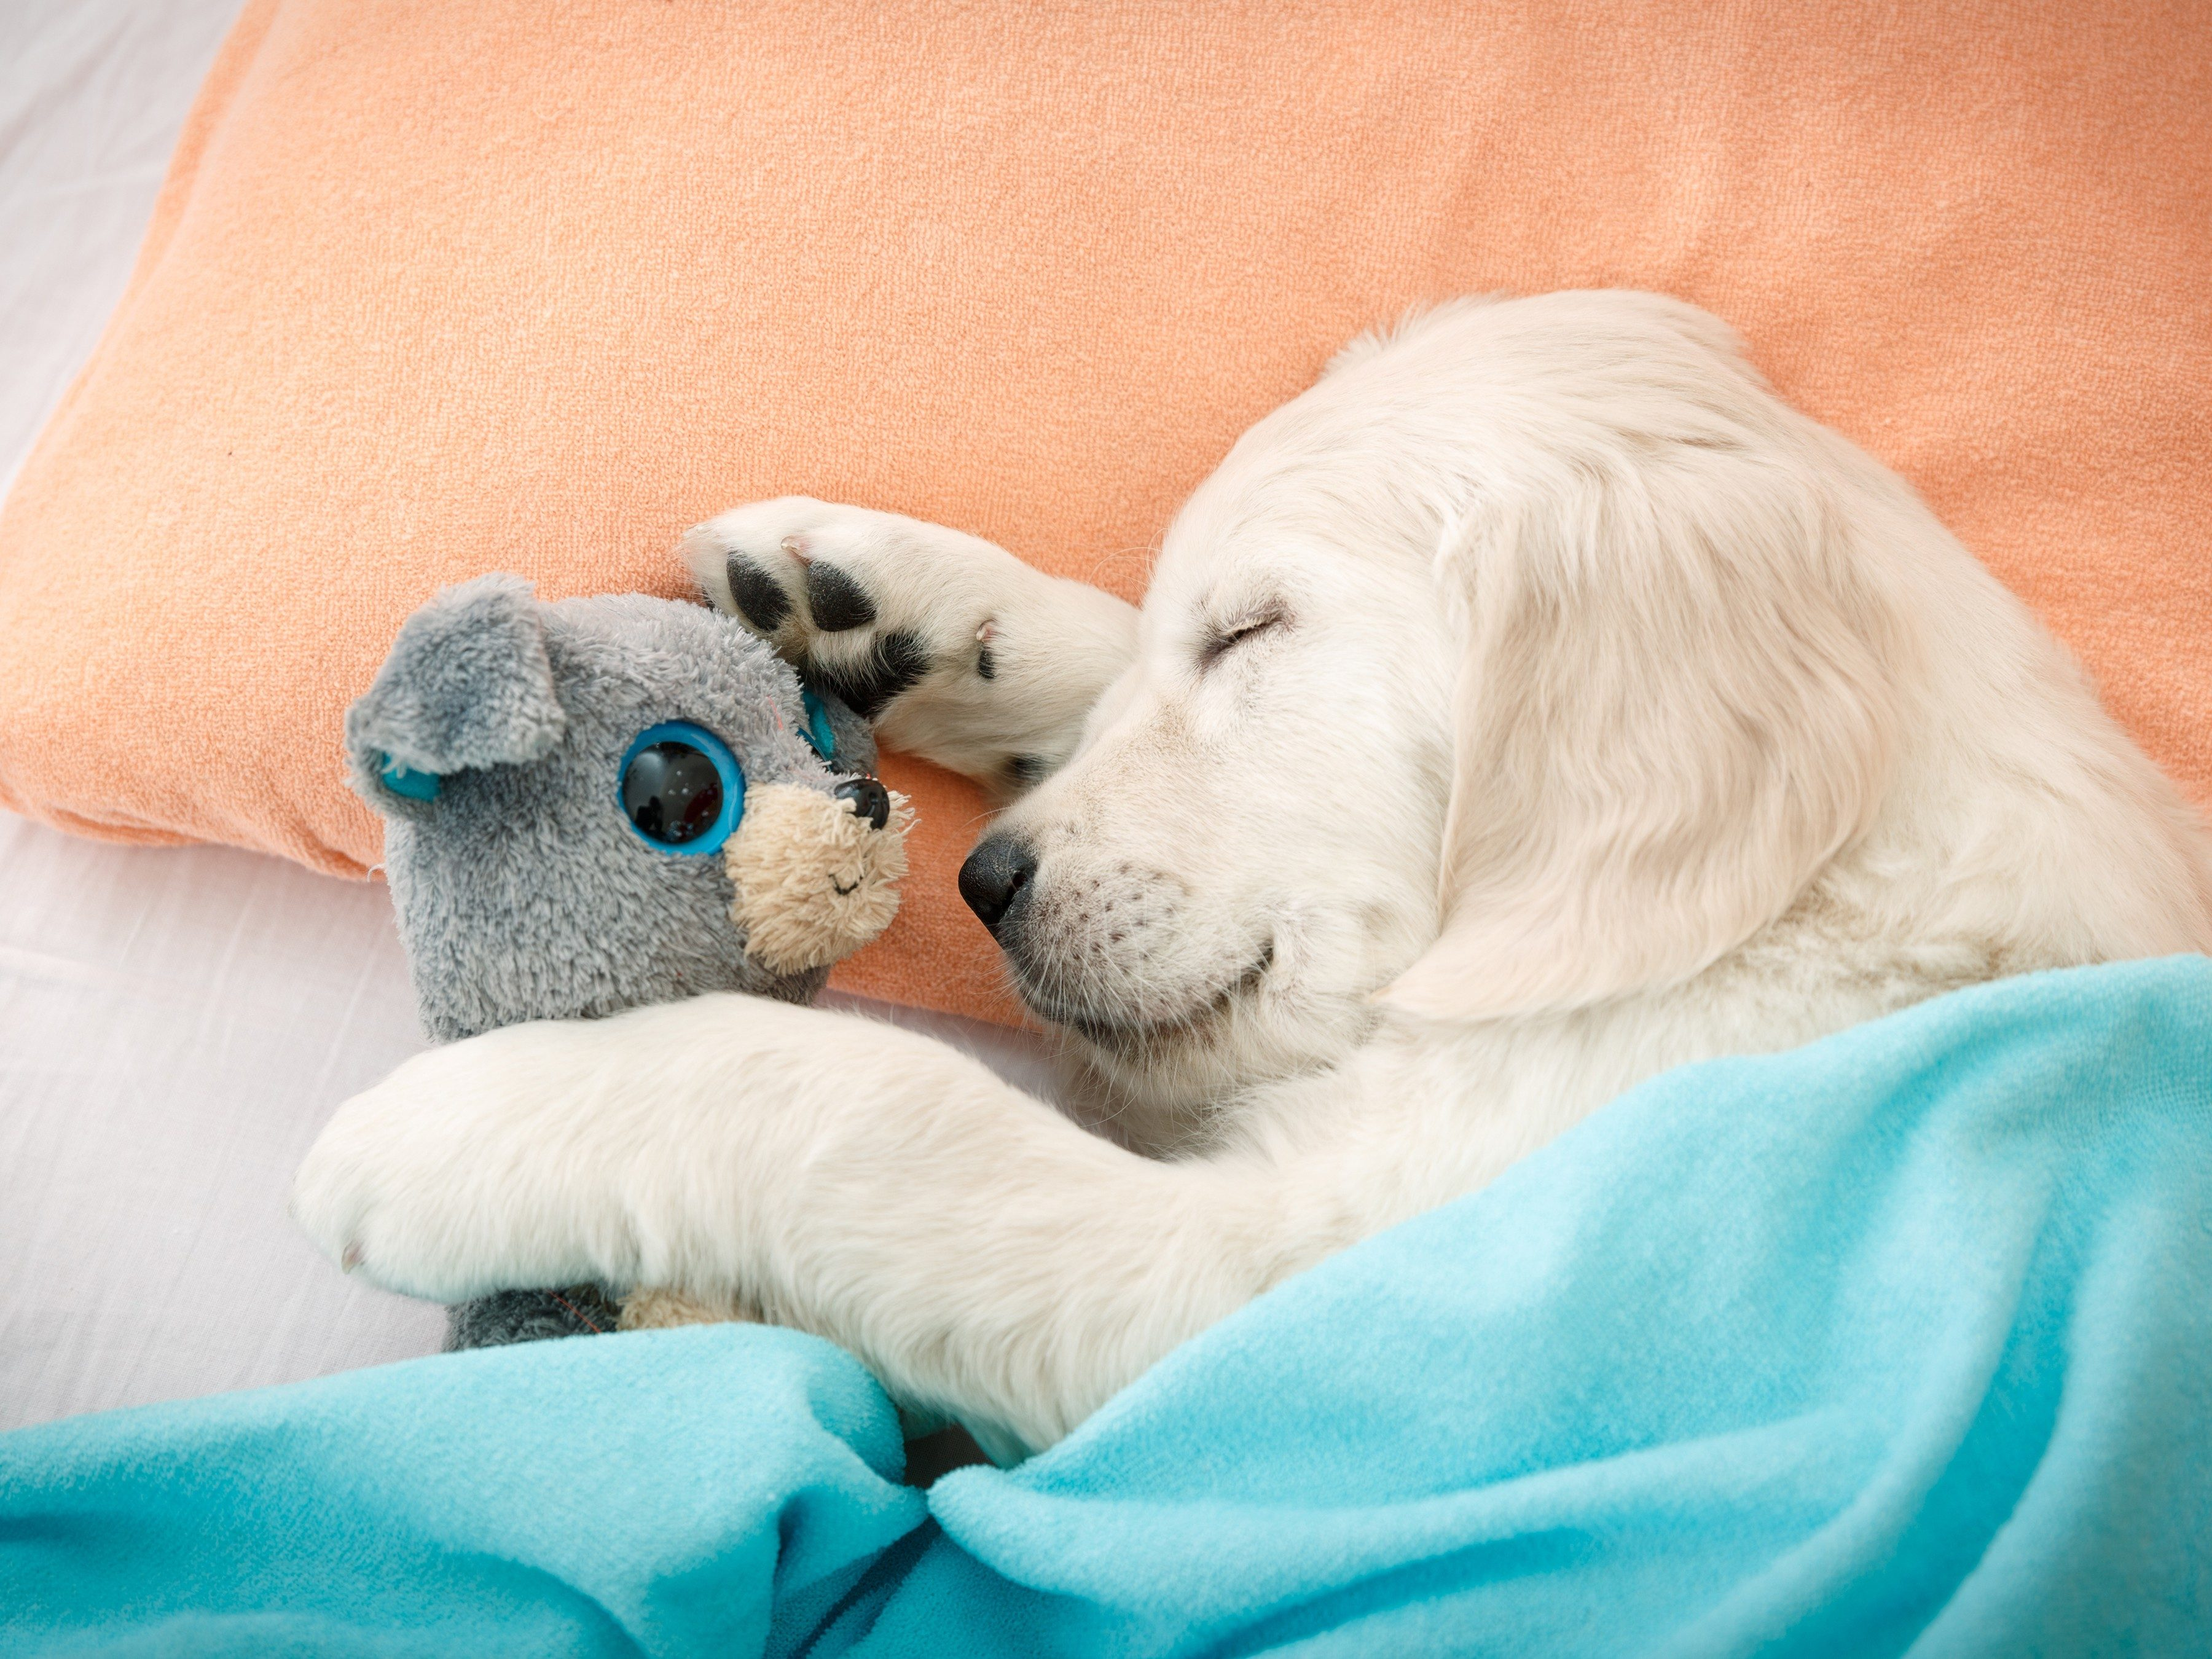 5. Create a safe home for your dog